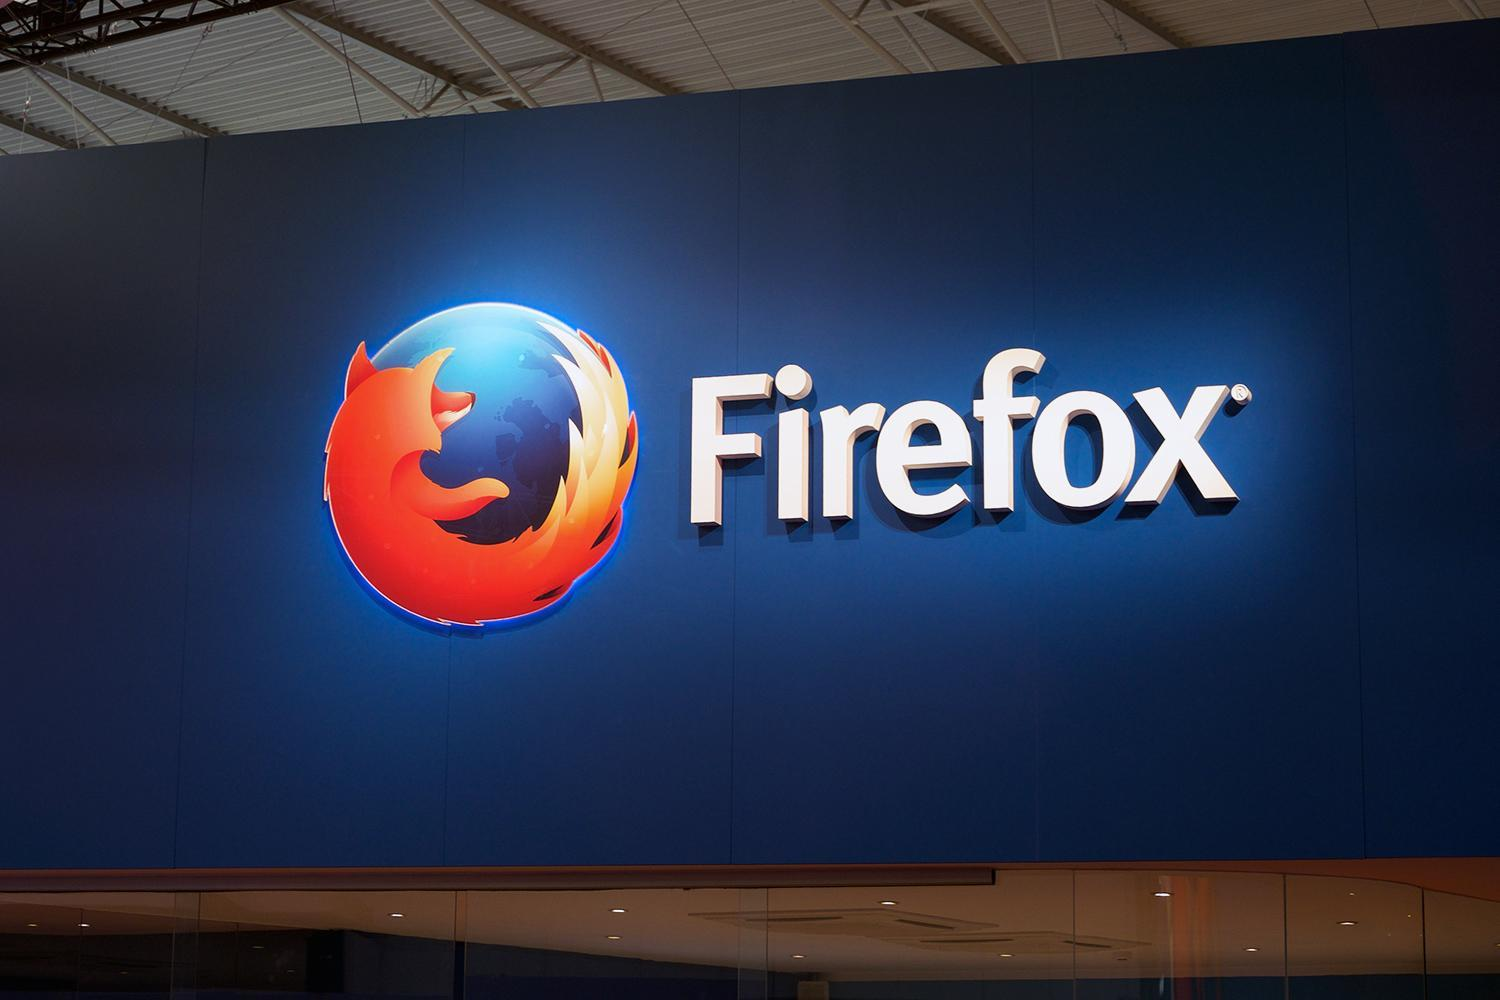 Mozilla reopens its Test Pilot program for Firefox in the safest way possible